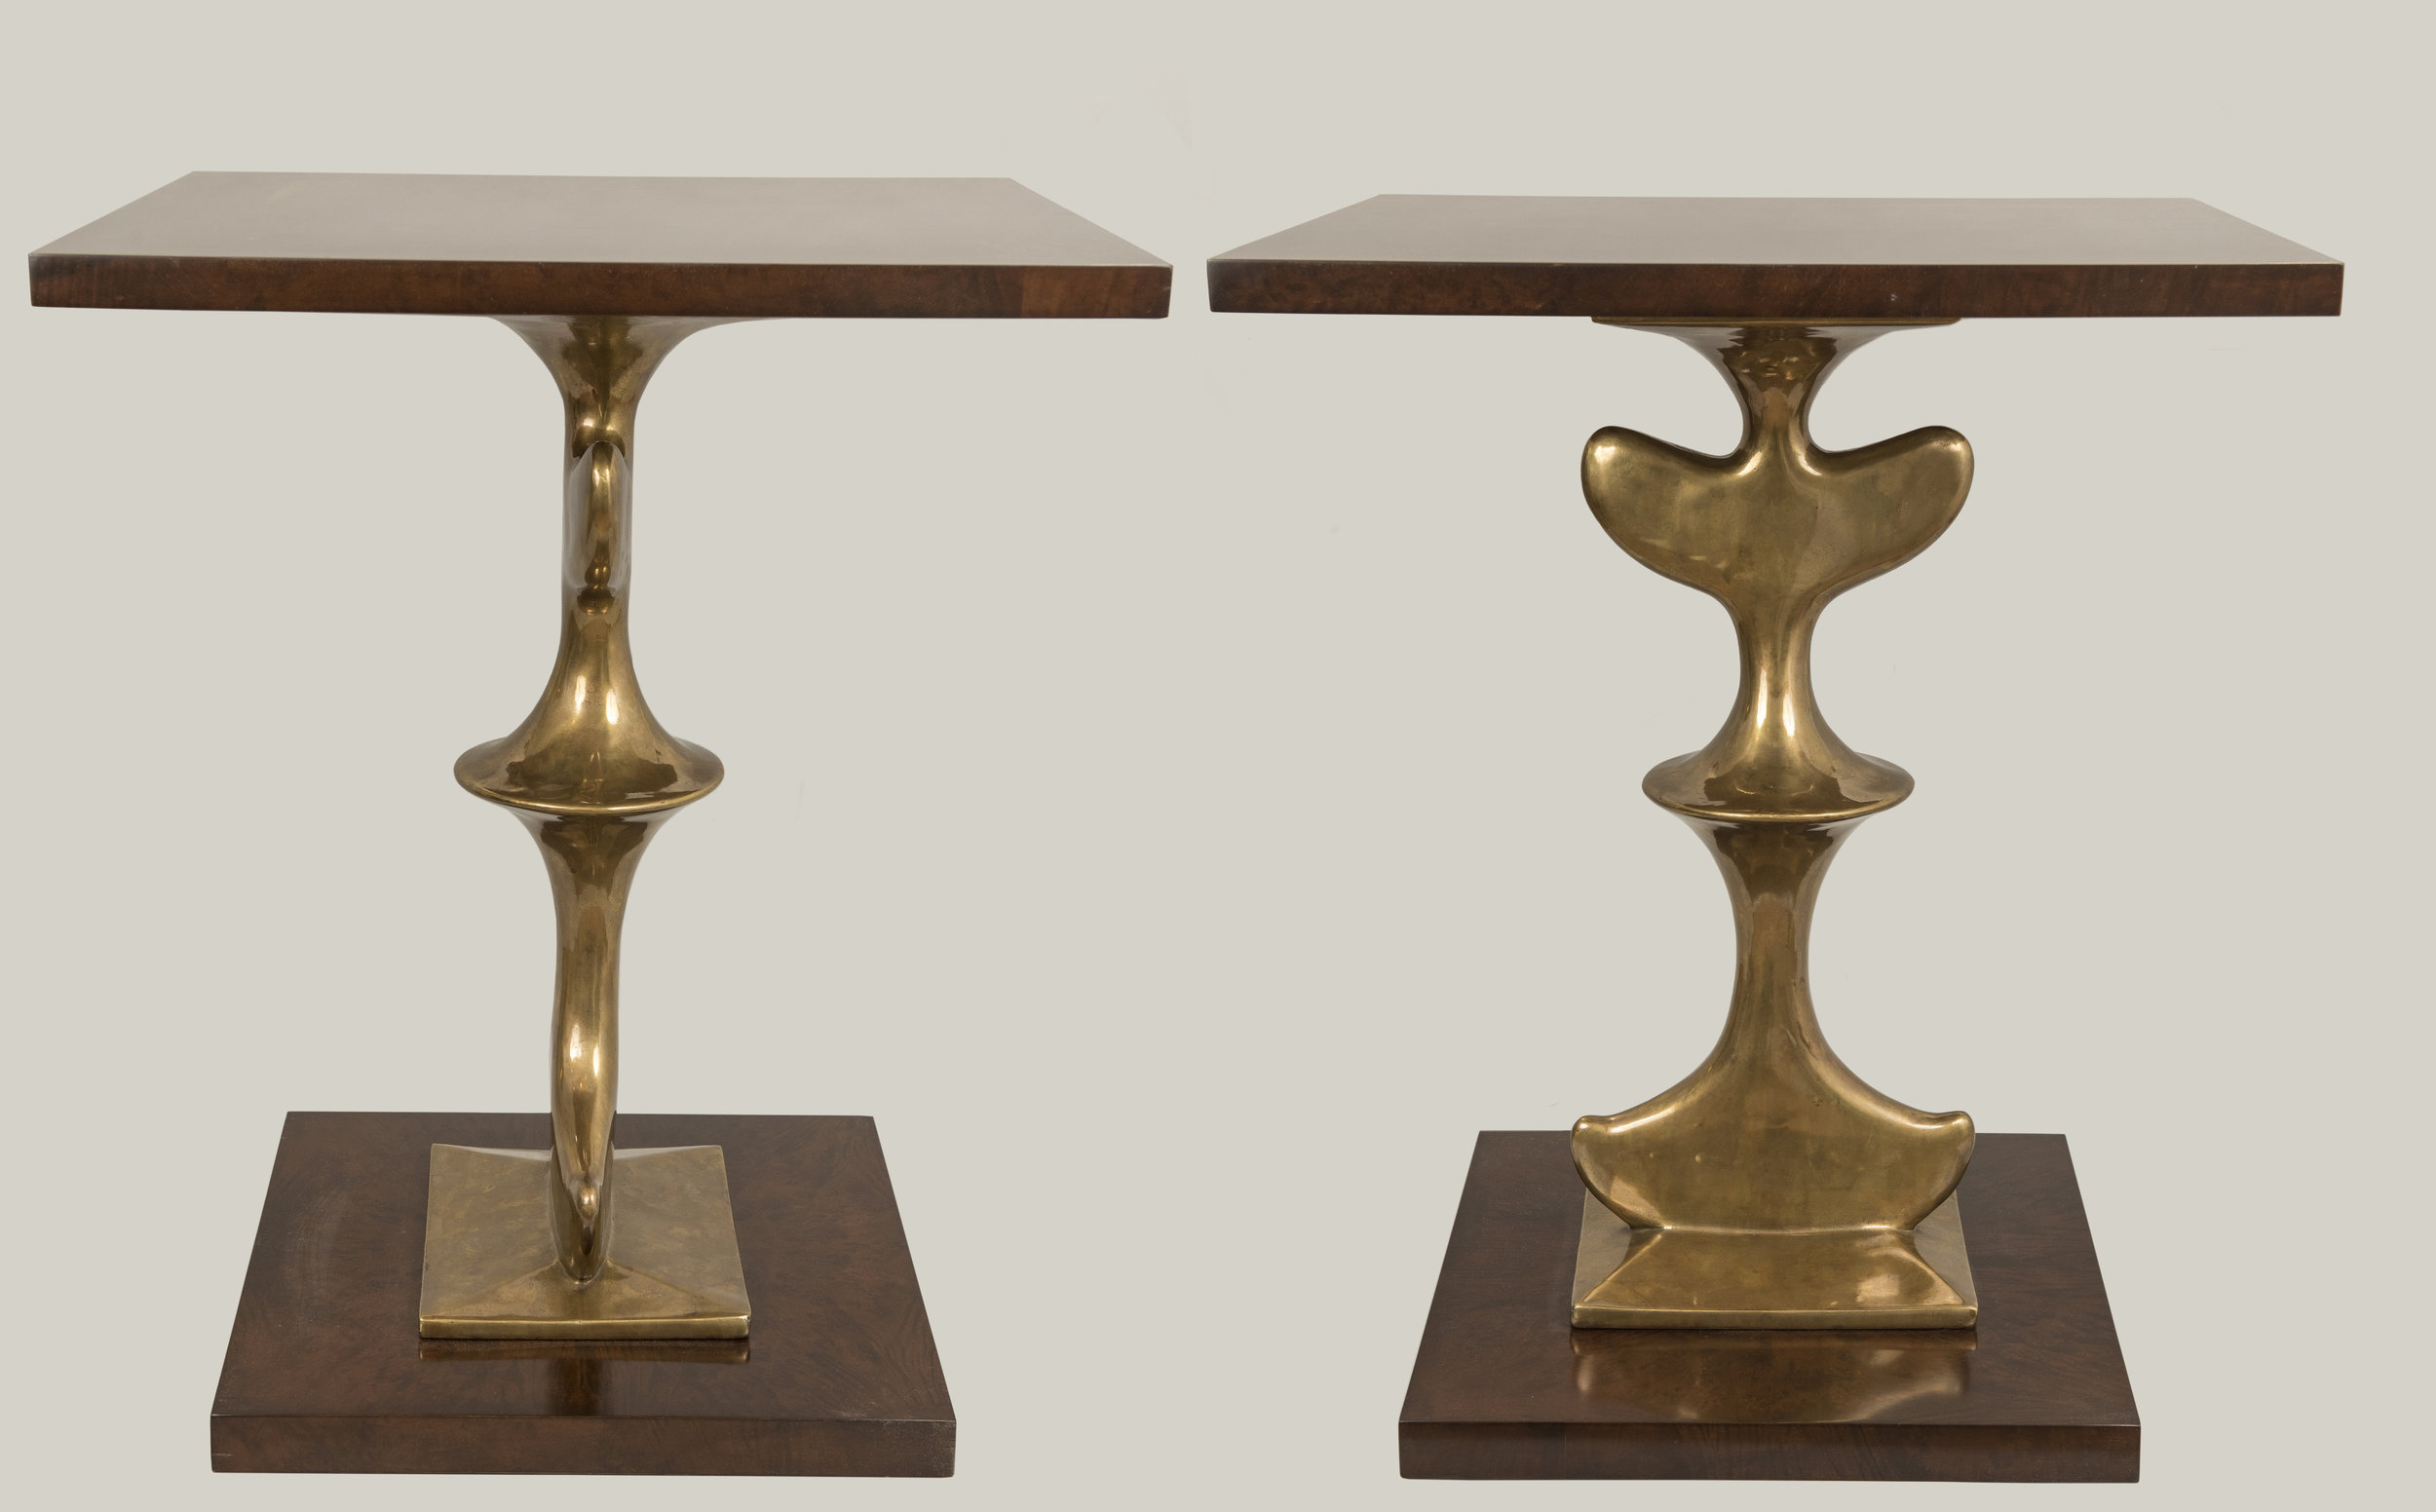 Pair of sculptural side tables